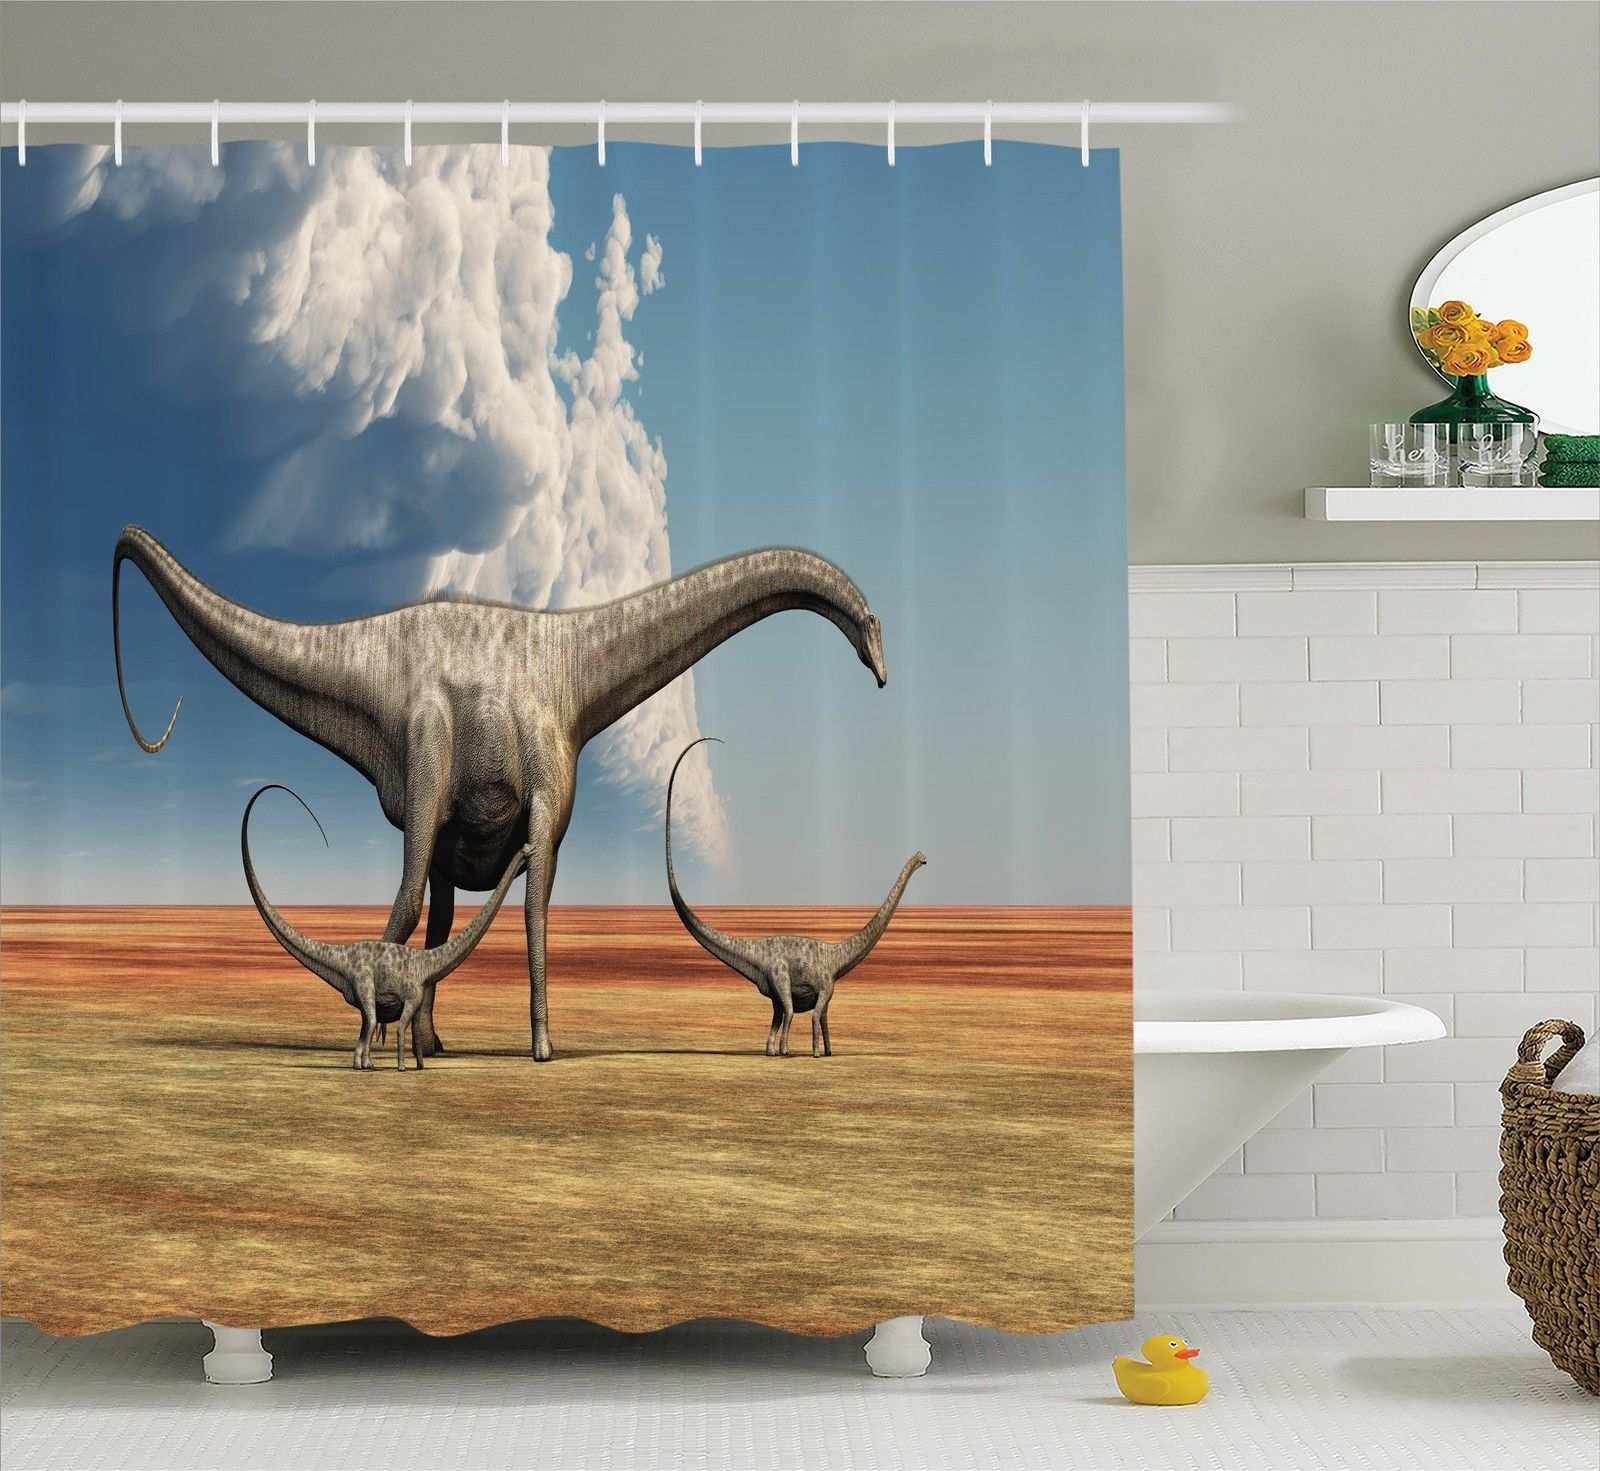 Jurassic Decor Shower Curtain Set, Mother Diplodocus Dinosaur Walks Along With Her Brood Of Youngsters Clouds, Bathroom Accessories, 69W X 70L Inches, By Ambesonne